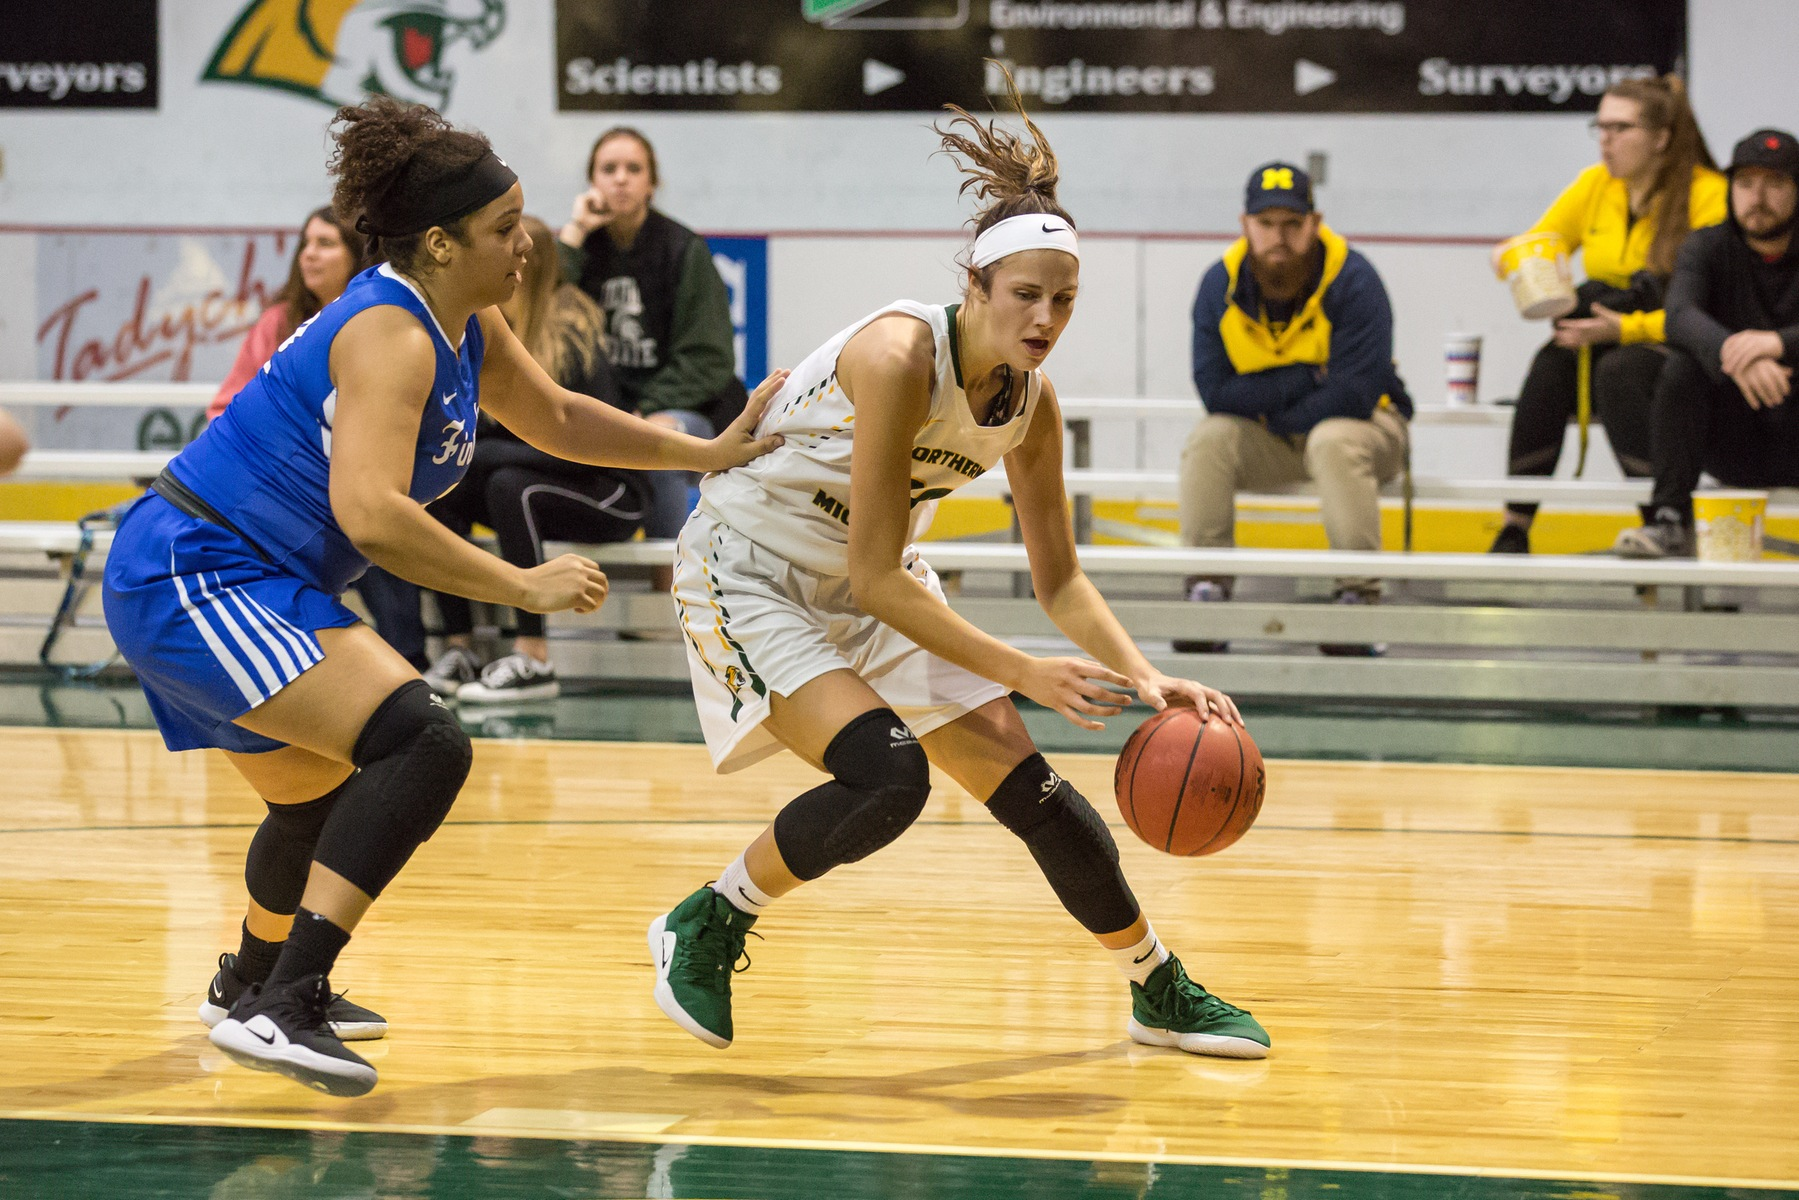 NMU Starts 2-0 With 64-61 Victory over Greyhounds